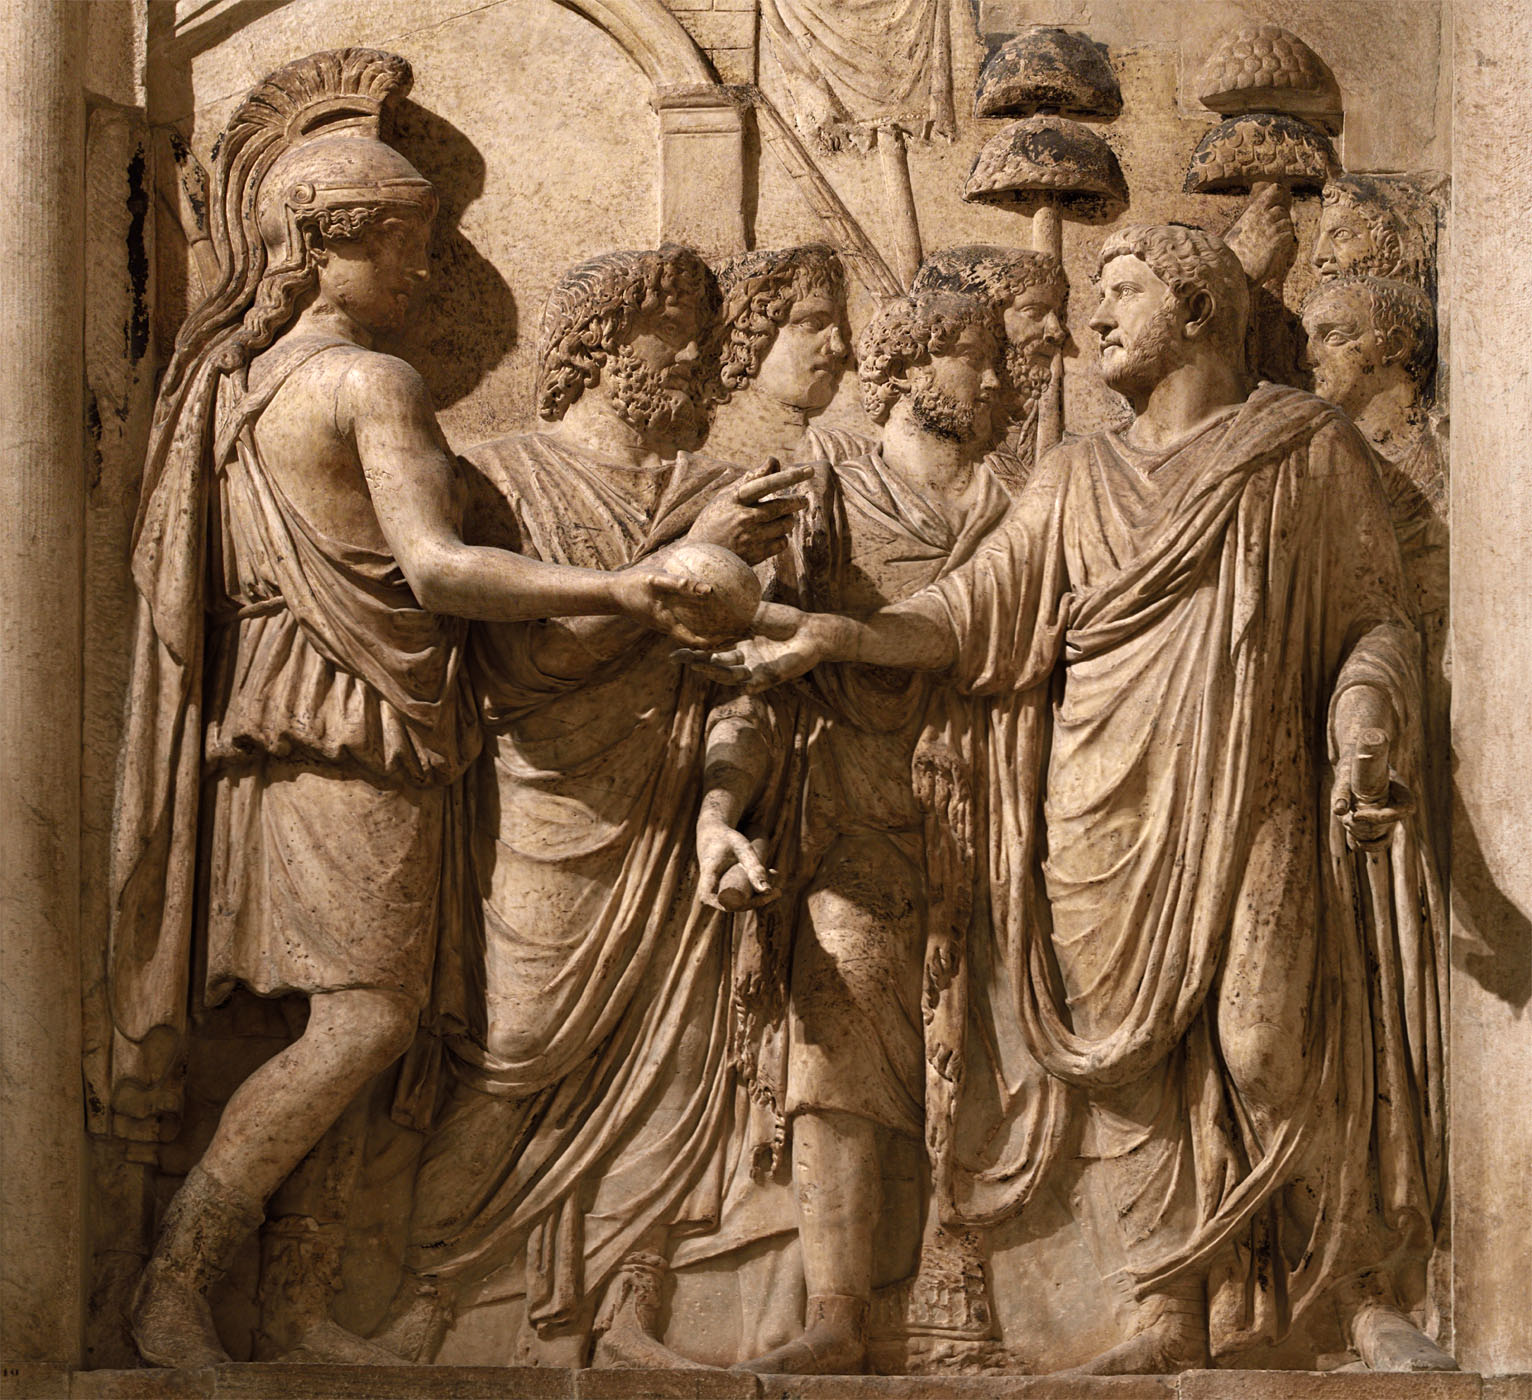 Hadrian's Adventus to Rome (close-up). Relief panel from an honorary arch at piazza Sciarra (presumably). Marble. 134—138 CE. Inv. No. MC 810. Rome, Capitoline Museums, Palazzo dei Conservatori, Main staircase